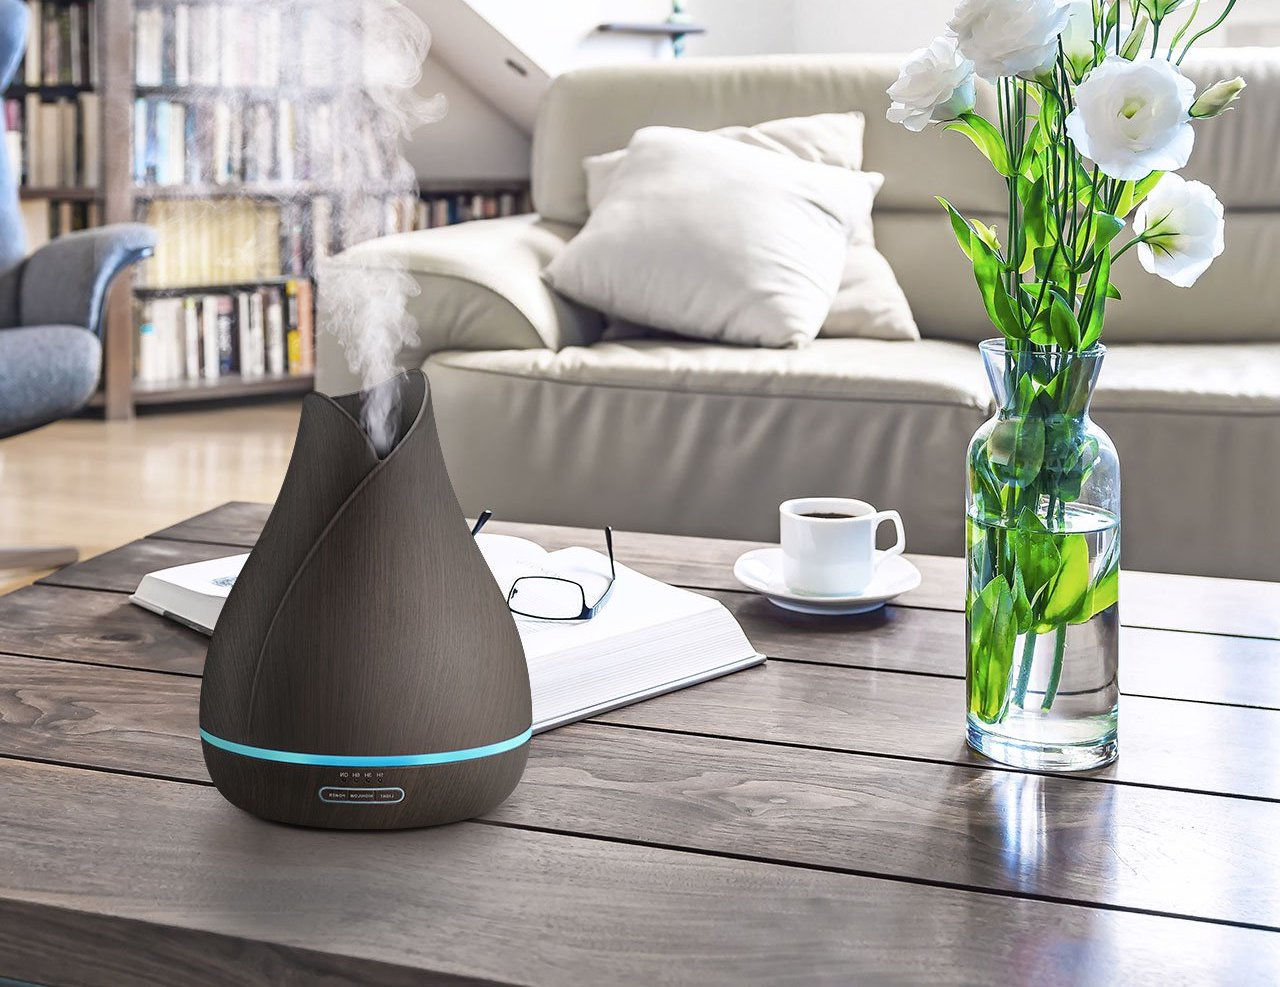 VicTsing Ultrasonic Essential Oil Diffuser